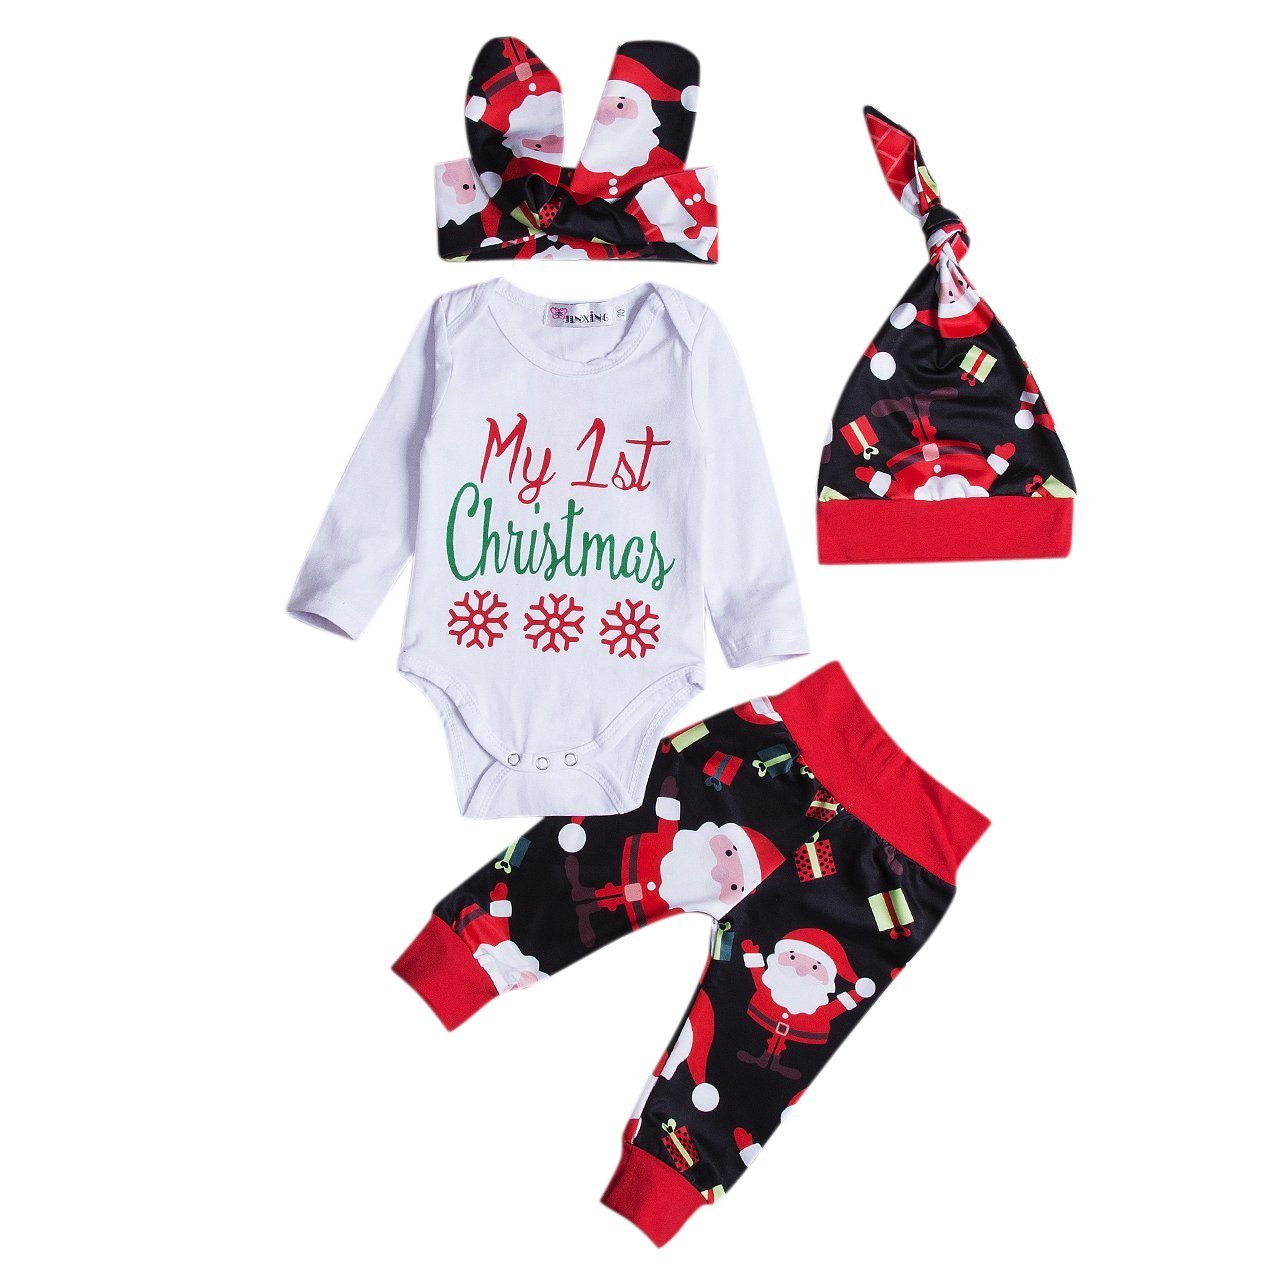 4Pcs Newborn Baby Girl Christmas Romper Pants Hat Headband Outfit Clothes Set